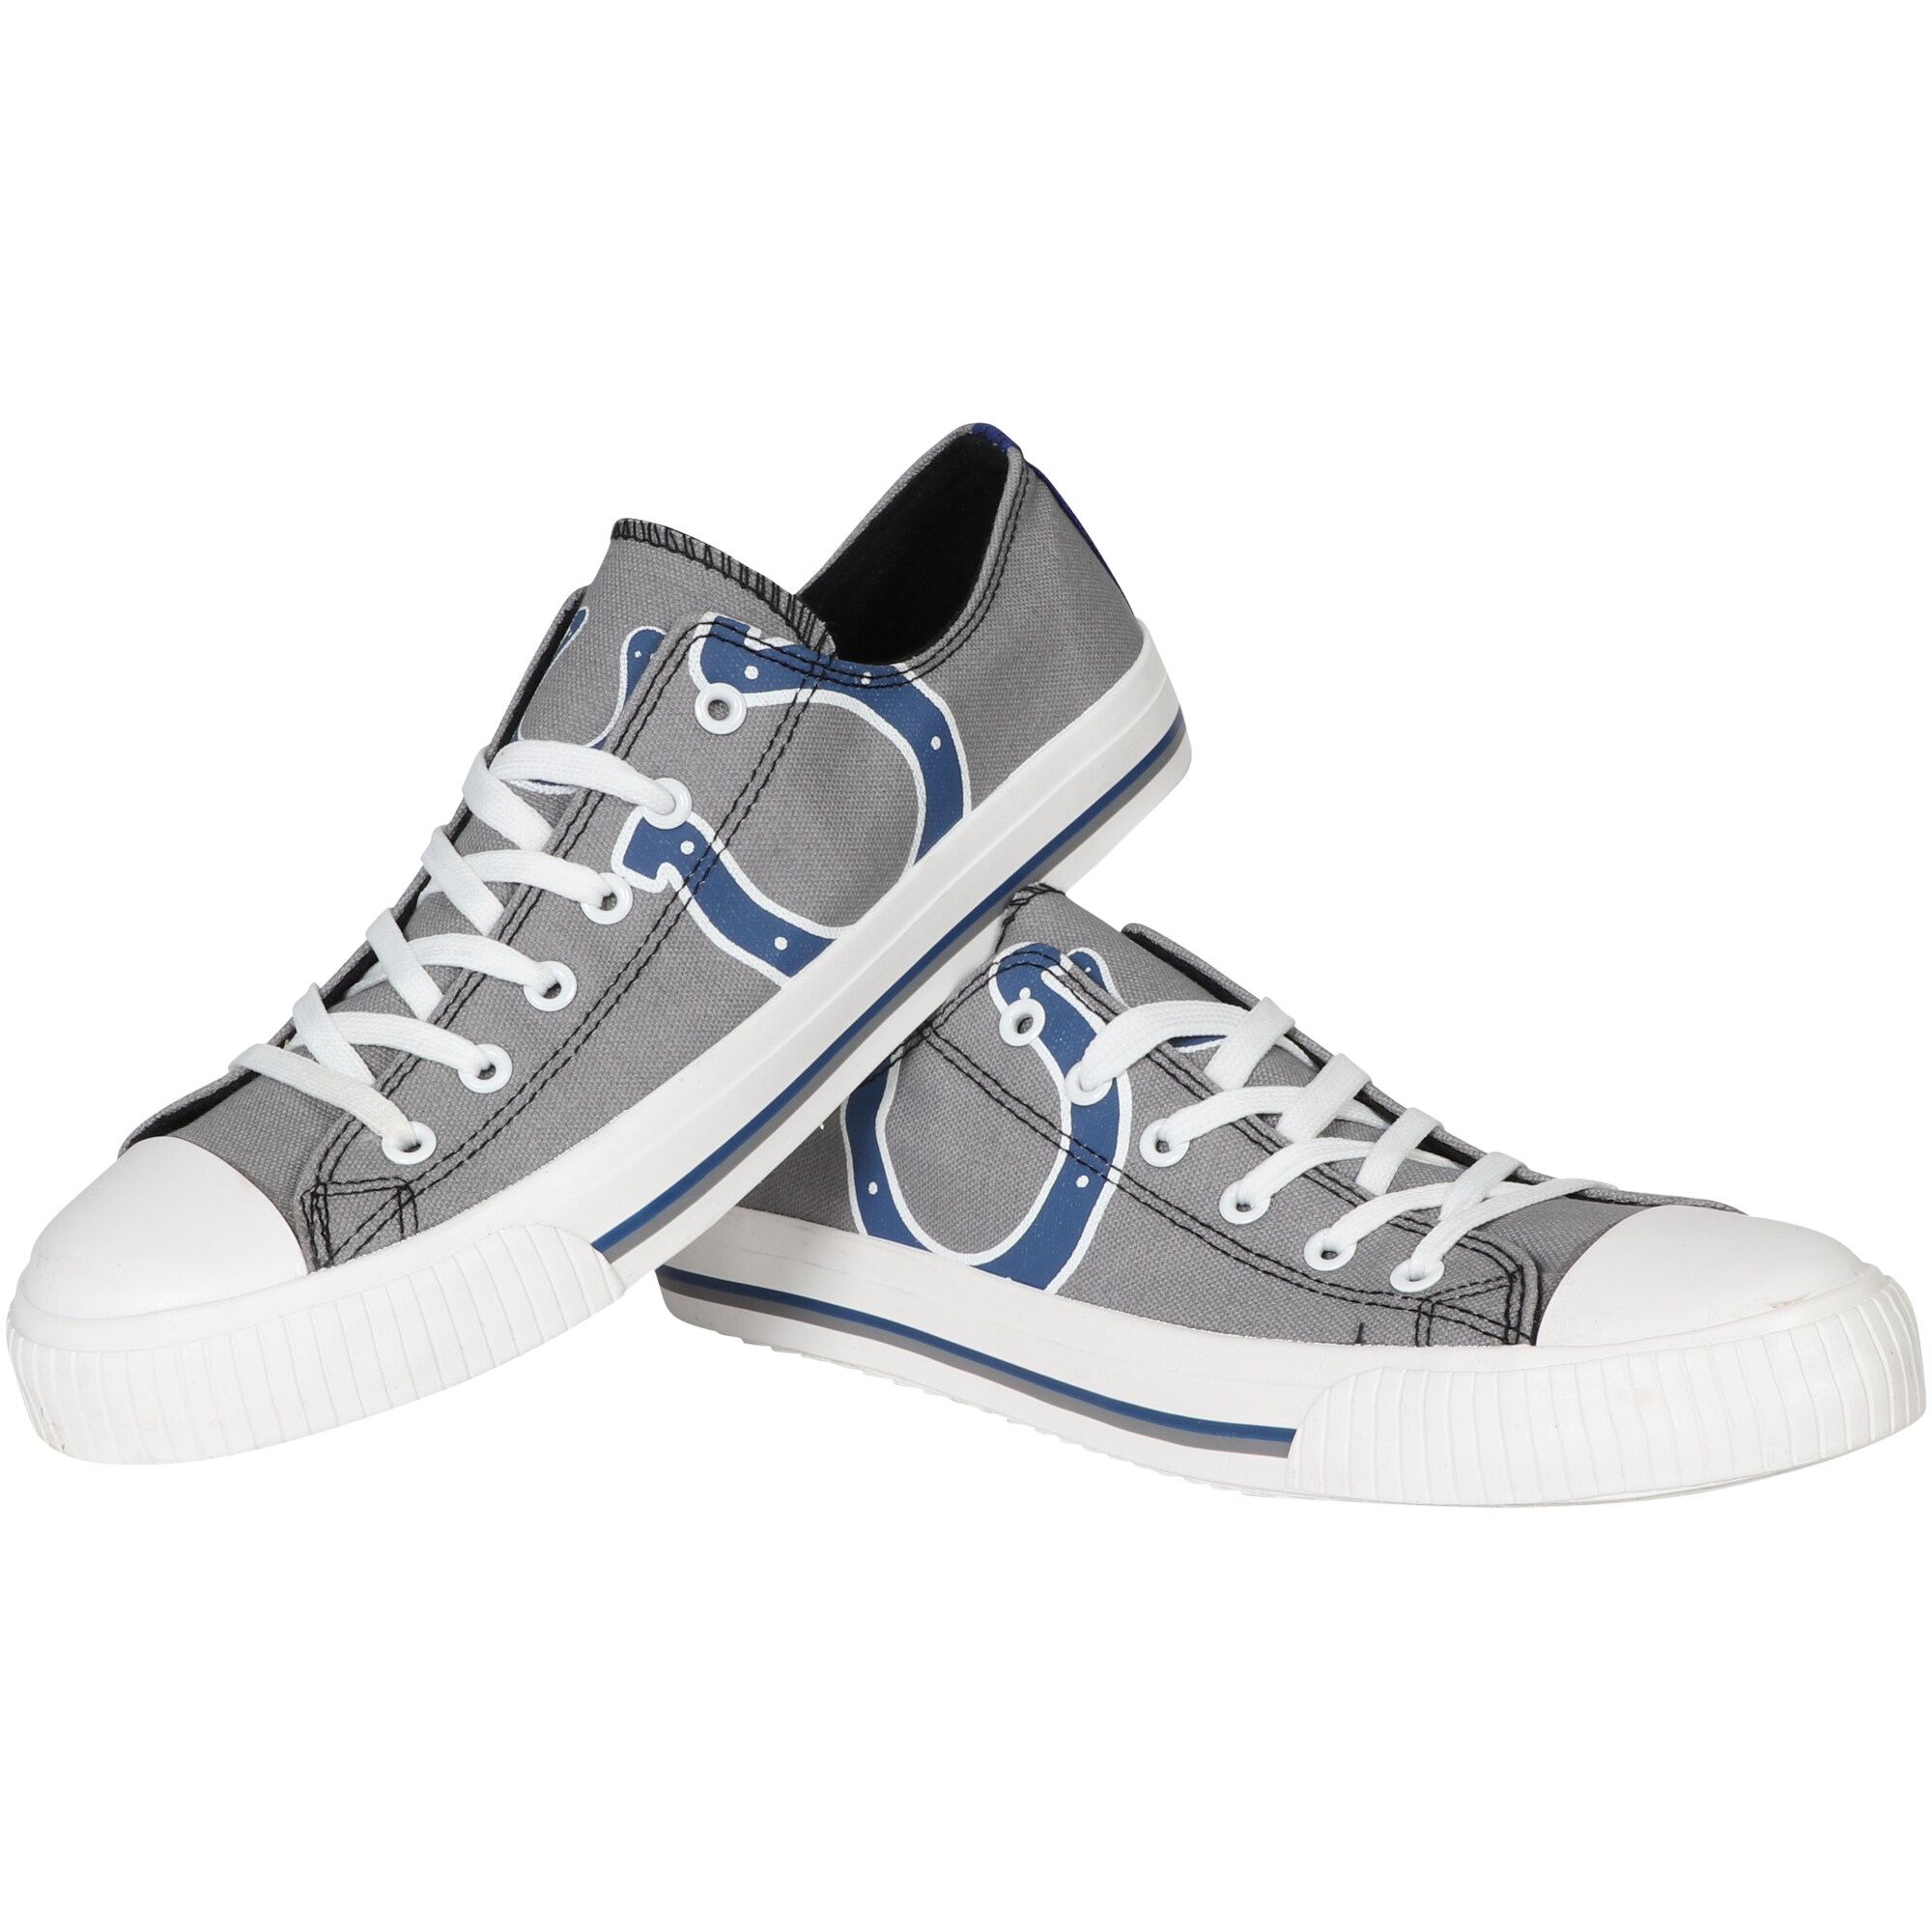 Indianapolis Colts Big Logo Low Top Sneakers